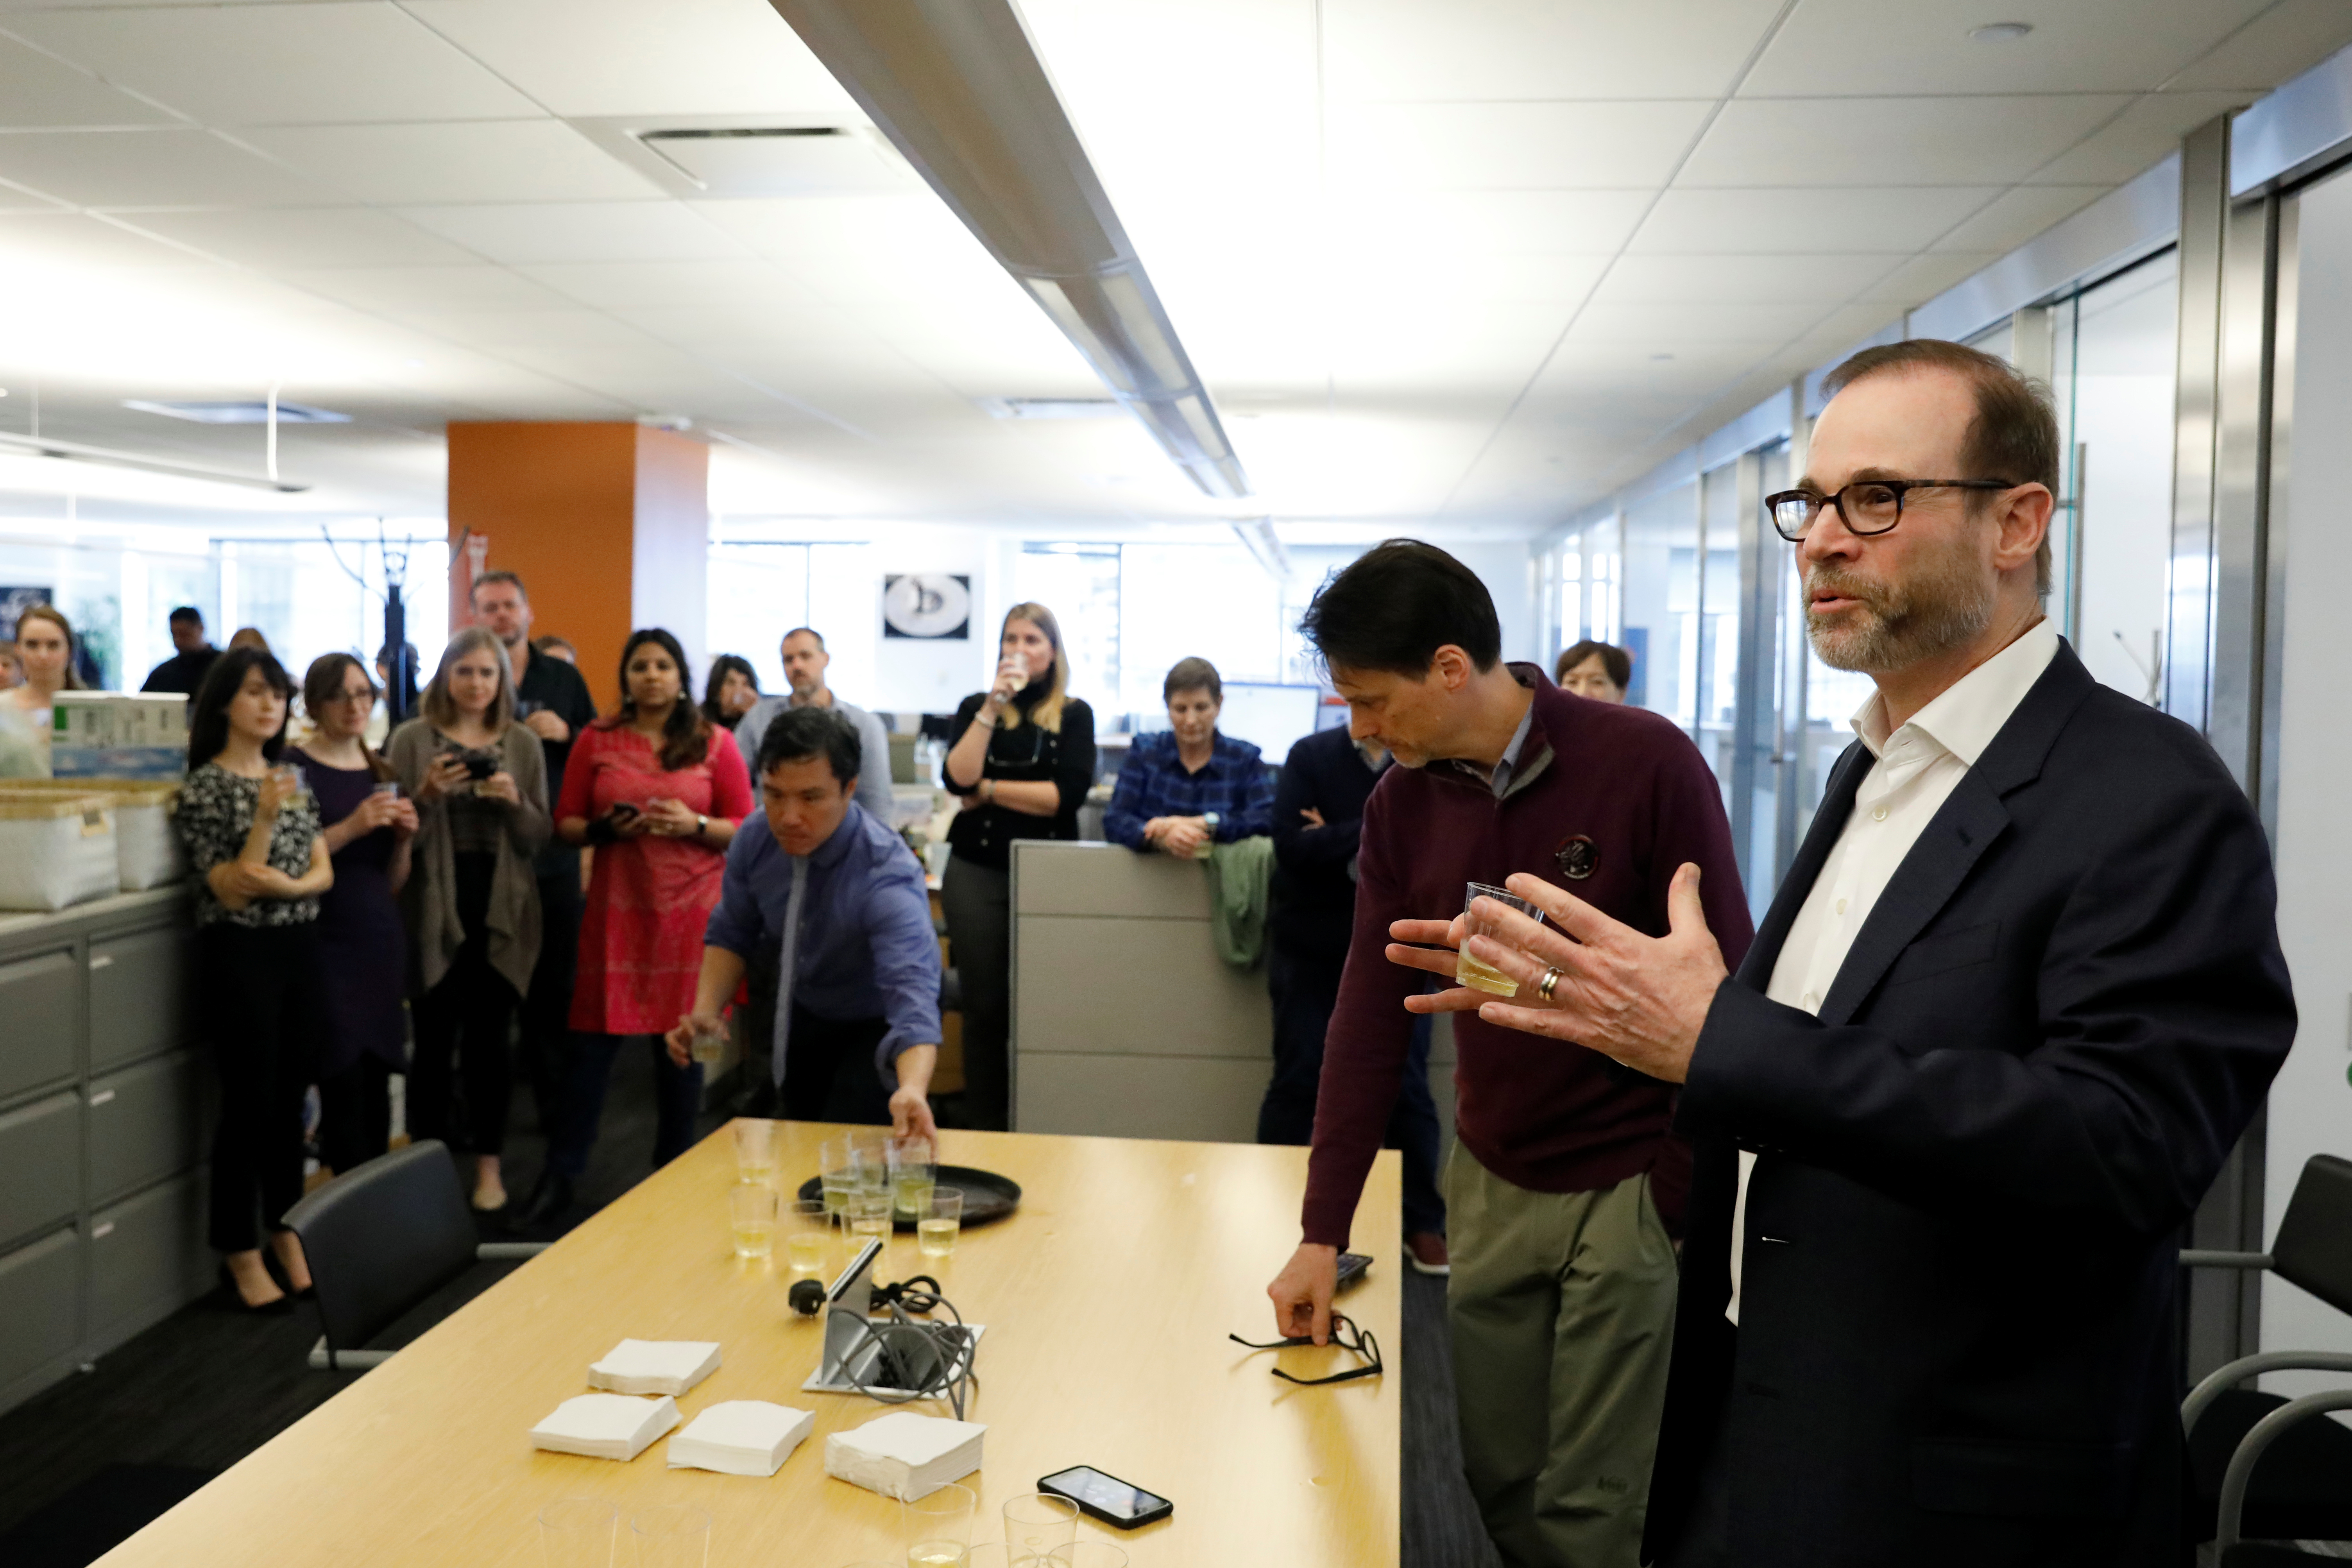 Reuters Editor-in-Chief Stephen J. Adler addresses the newsroom after Reuters was awarded two Pulitzer Prizes for international reporting and breaking news photography, in New York City, April 15, 2019.